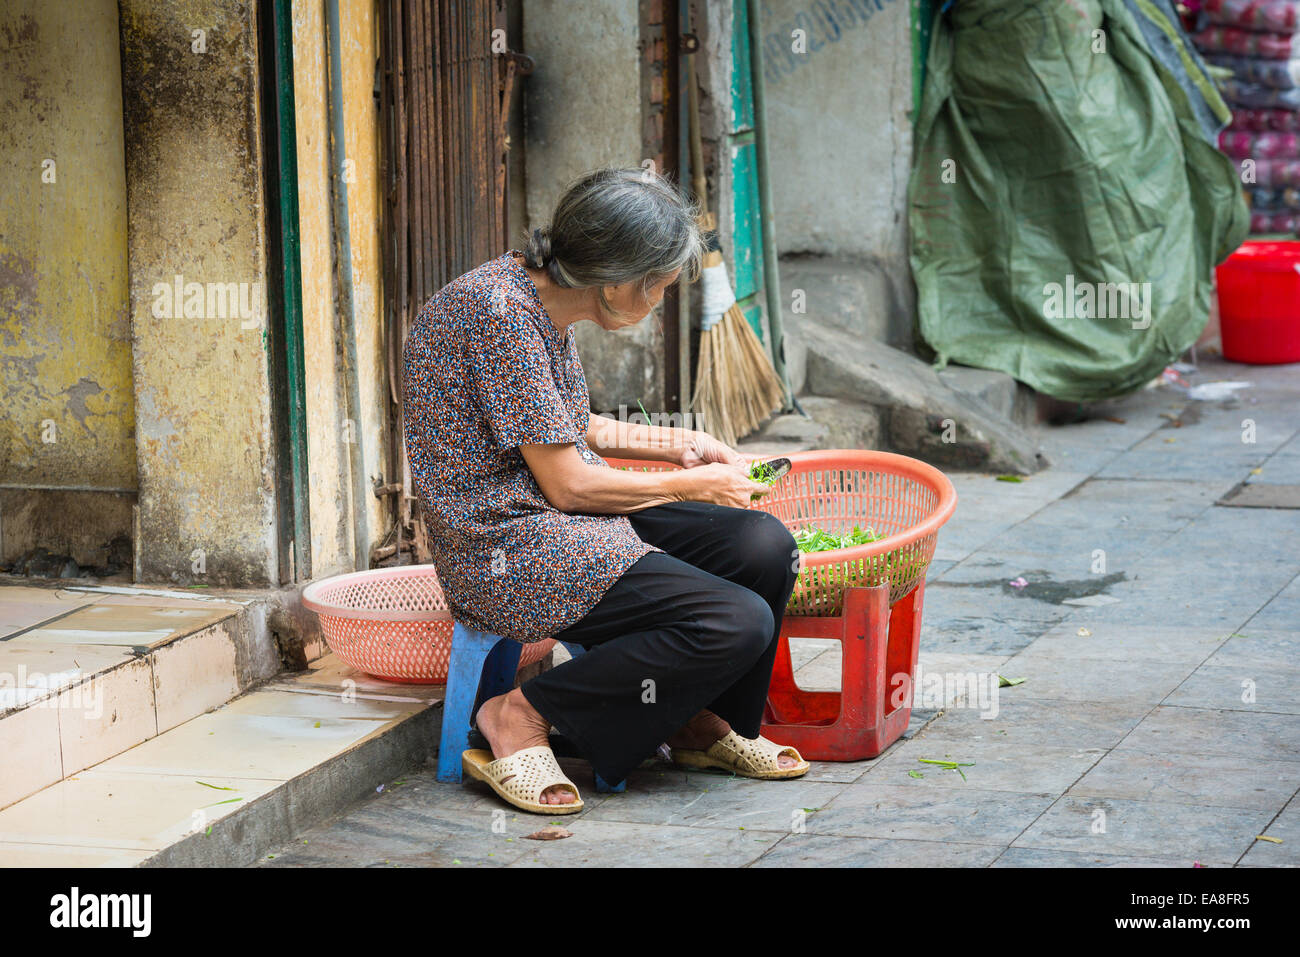 Elderly Vietnamese woman preparing vegetables at Dong Xuan Market in Hanoi's Old Quarter - Stock Image